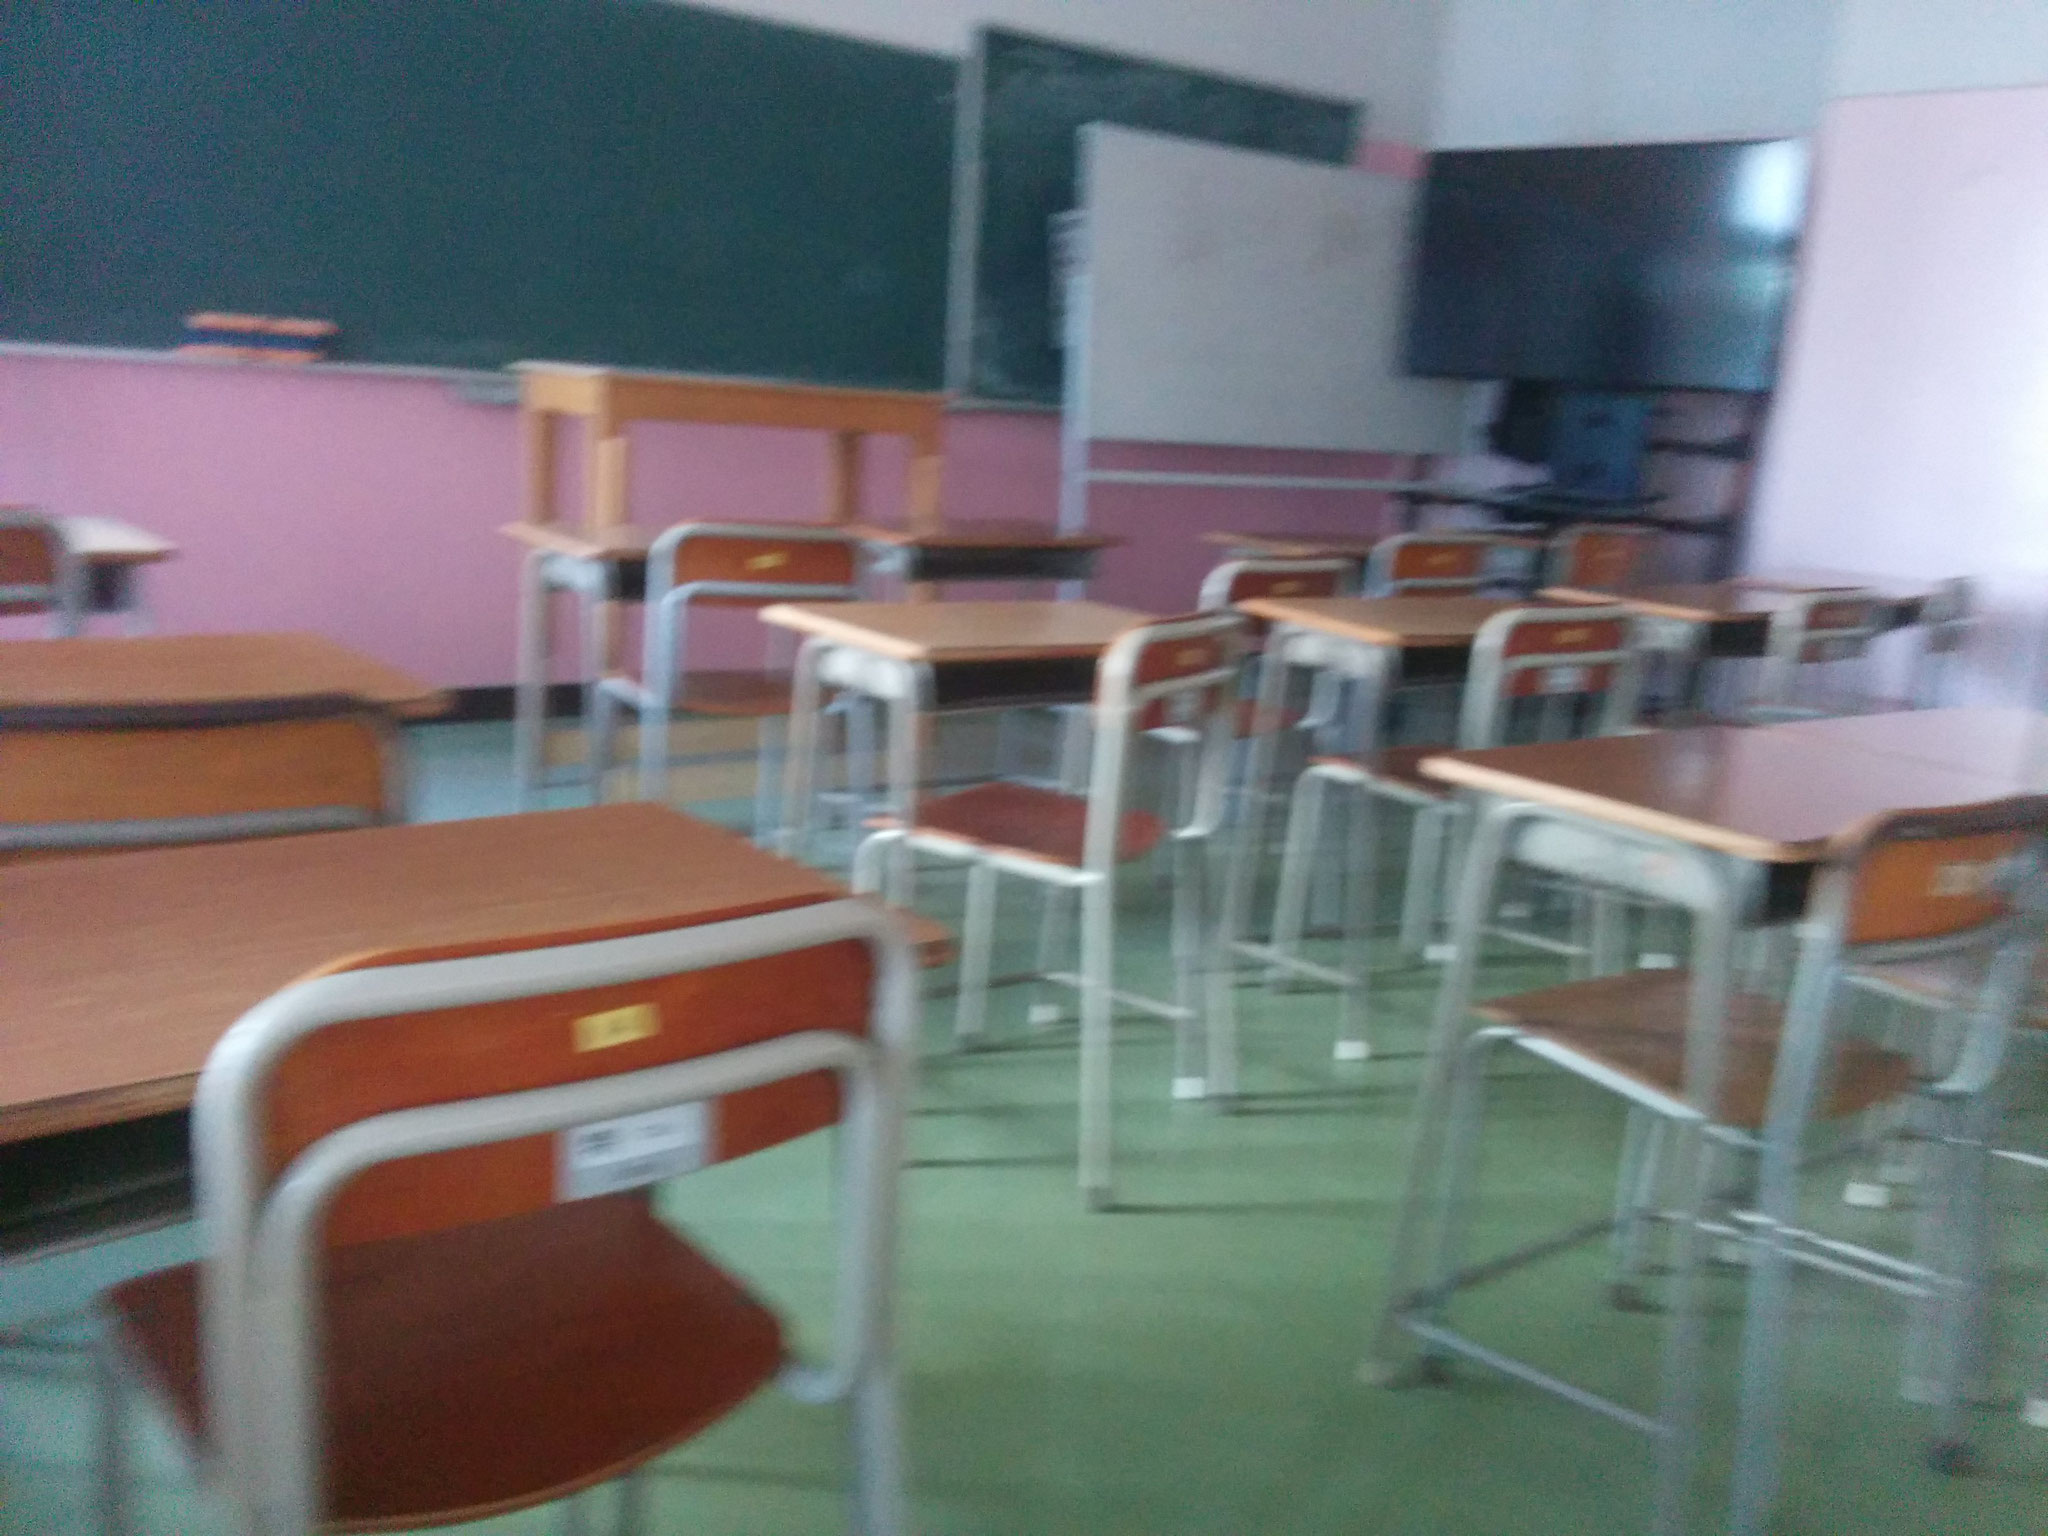 23 just a classroom (not mine though)